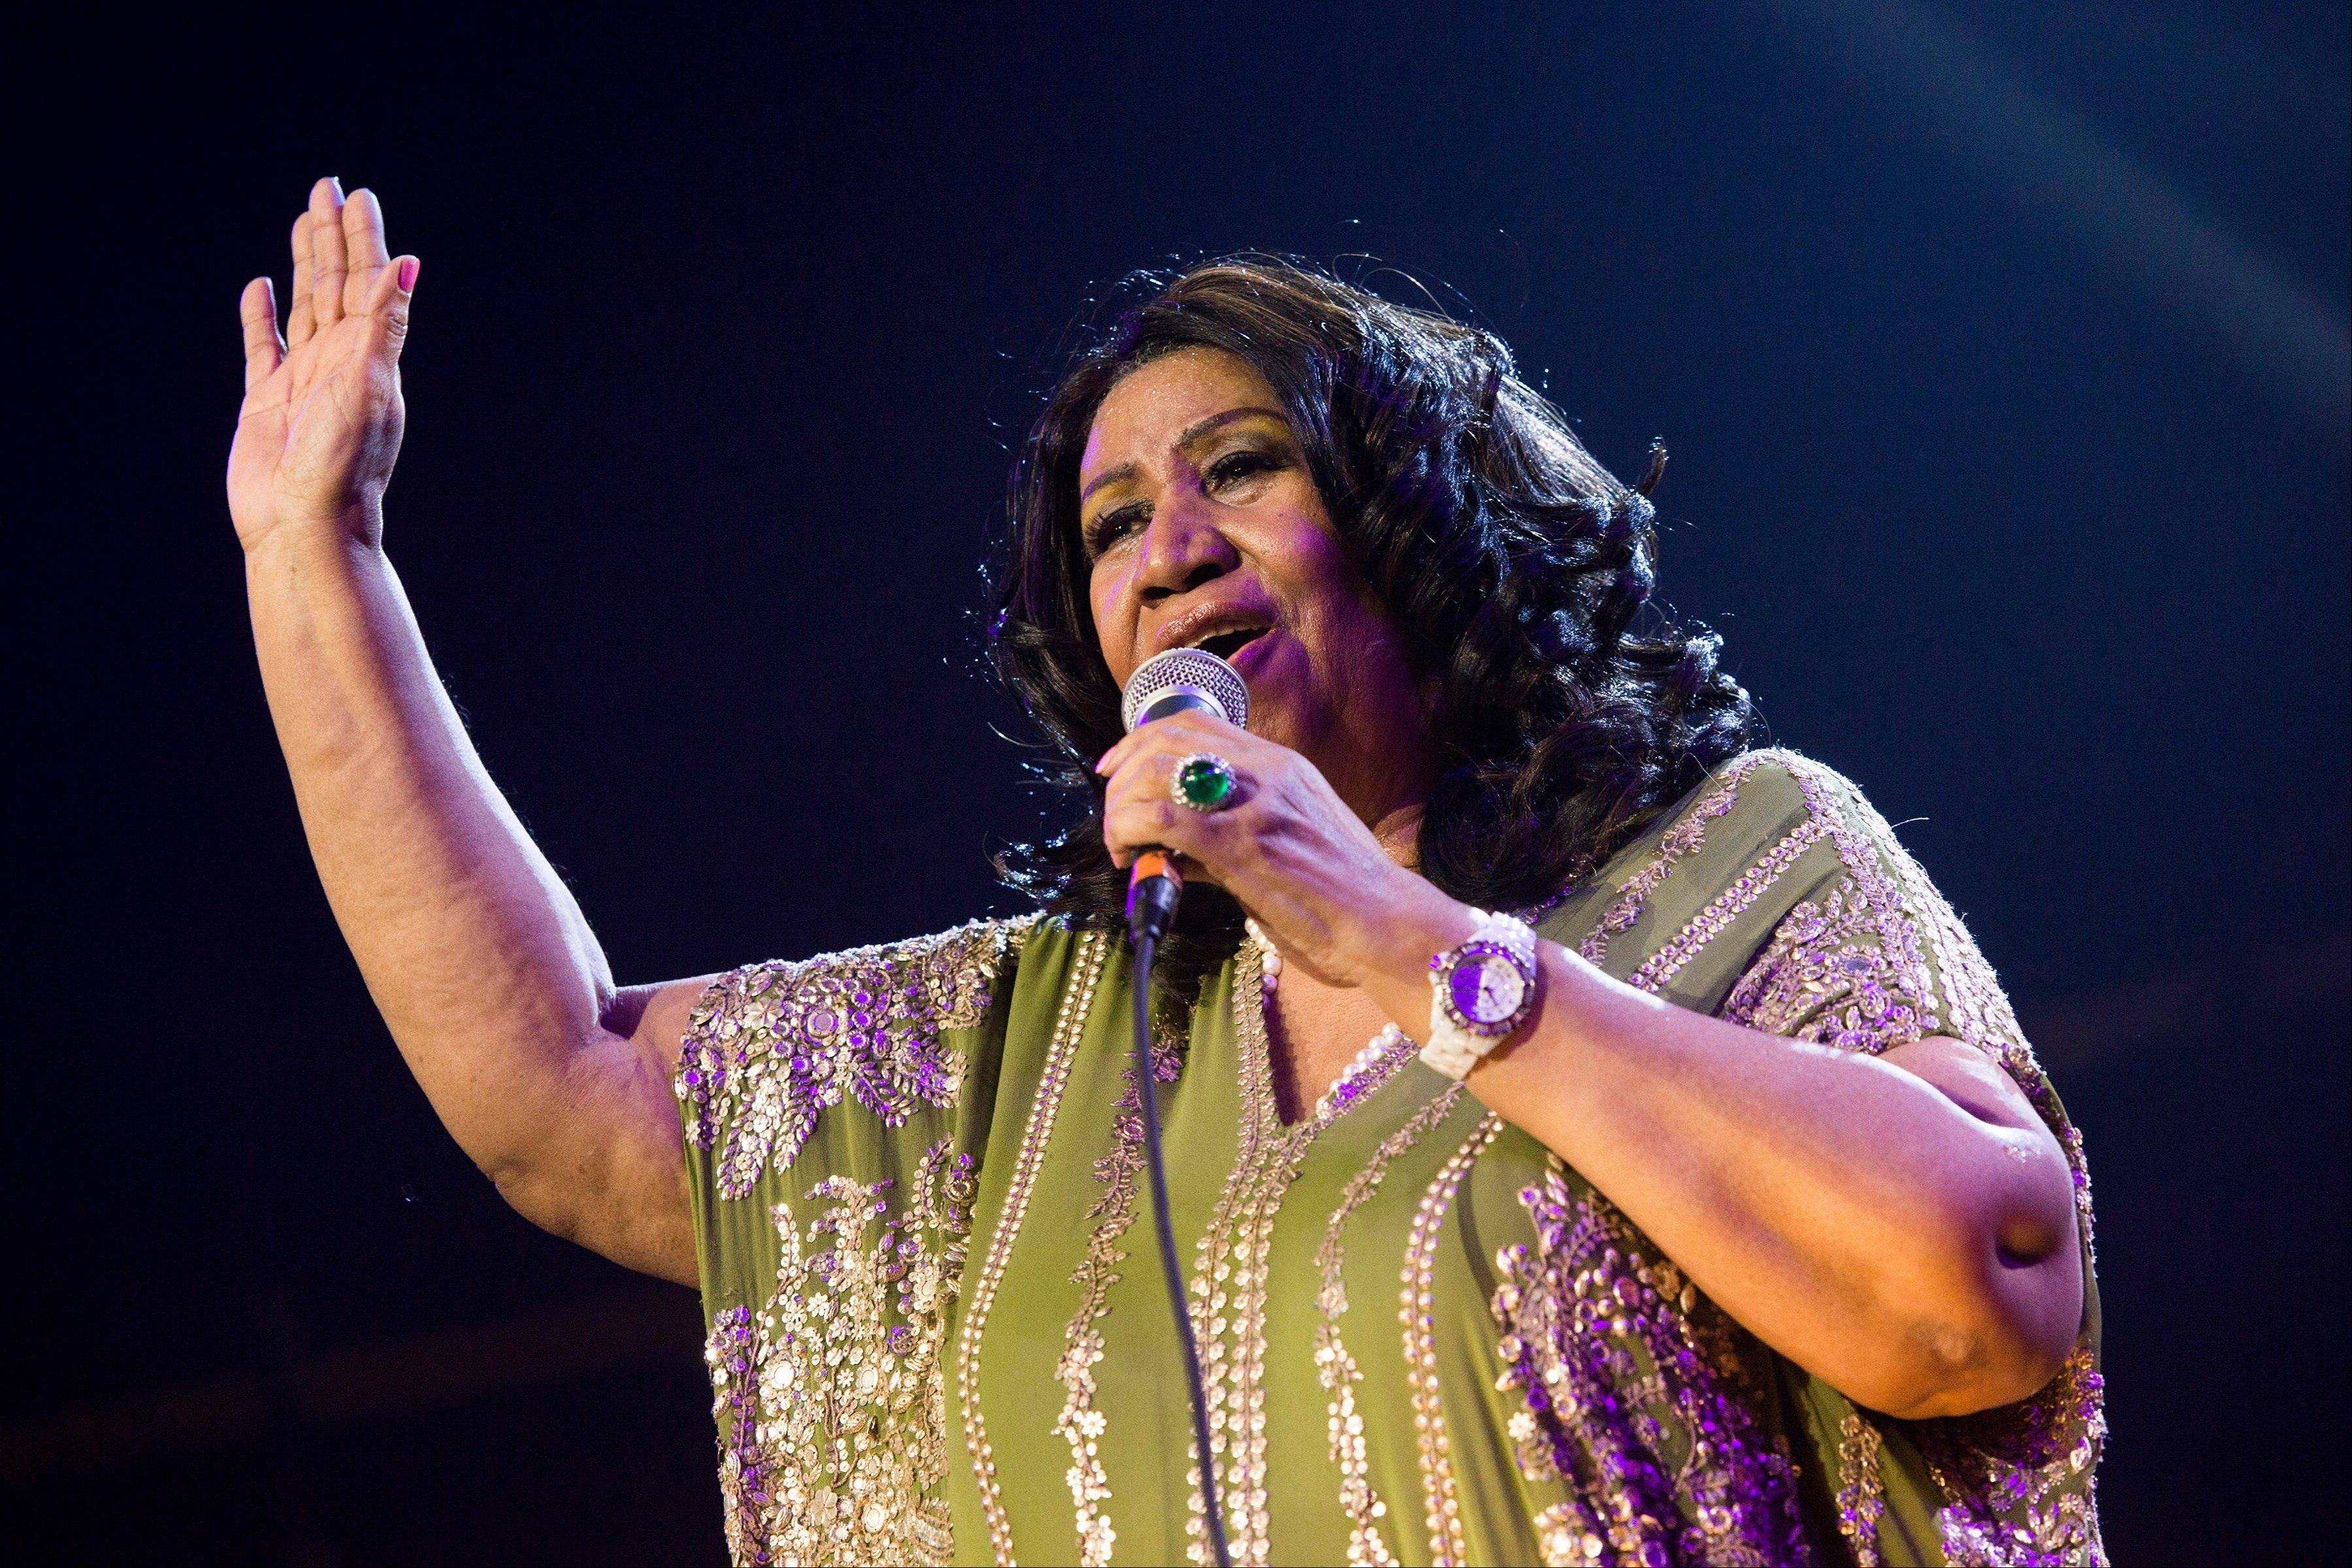 Aretha Franklin will not be attending a baseball luncheon during which she was to receive an honor for contributions to civil rights. Franklin, 71, has already canceled several concerts recently because of undisclosed health reasons. In a statement issued Monday by Major League Baseball, the Grammy-winning singer referred to ongoing �treatment� that prevented her from traveling.